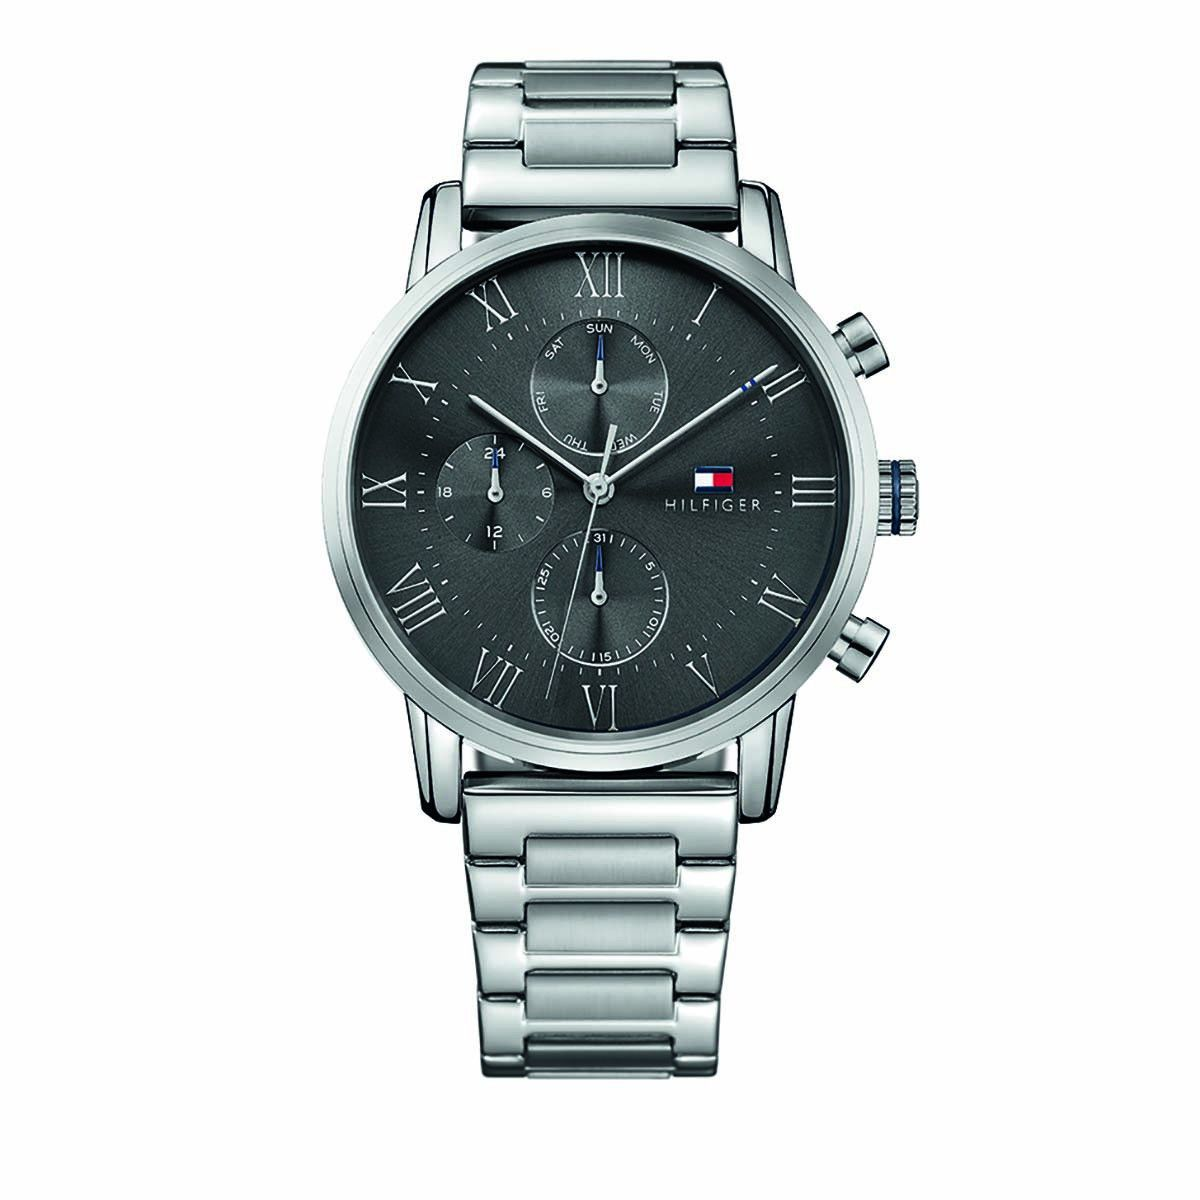 Tommy Hilfiger Multifunctional Watch Dressed Up 1791397 Silver Uhr Uhr Uhren Fossil Uhr Damenuhren Daniel Wellin In 2020 Tommy Hilfiger Watch Model Watches For Men